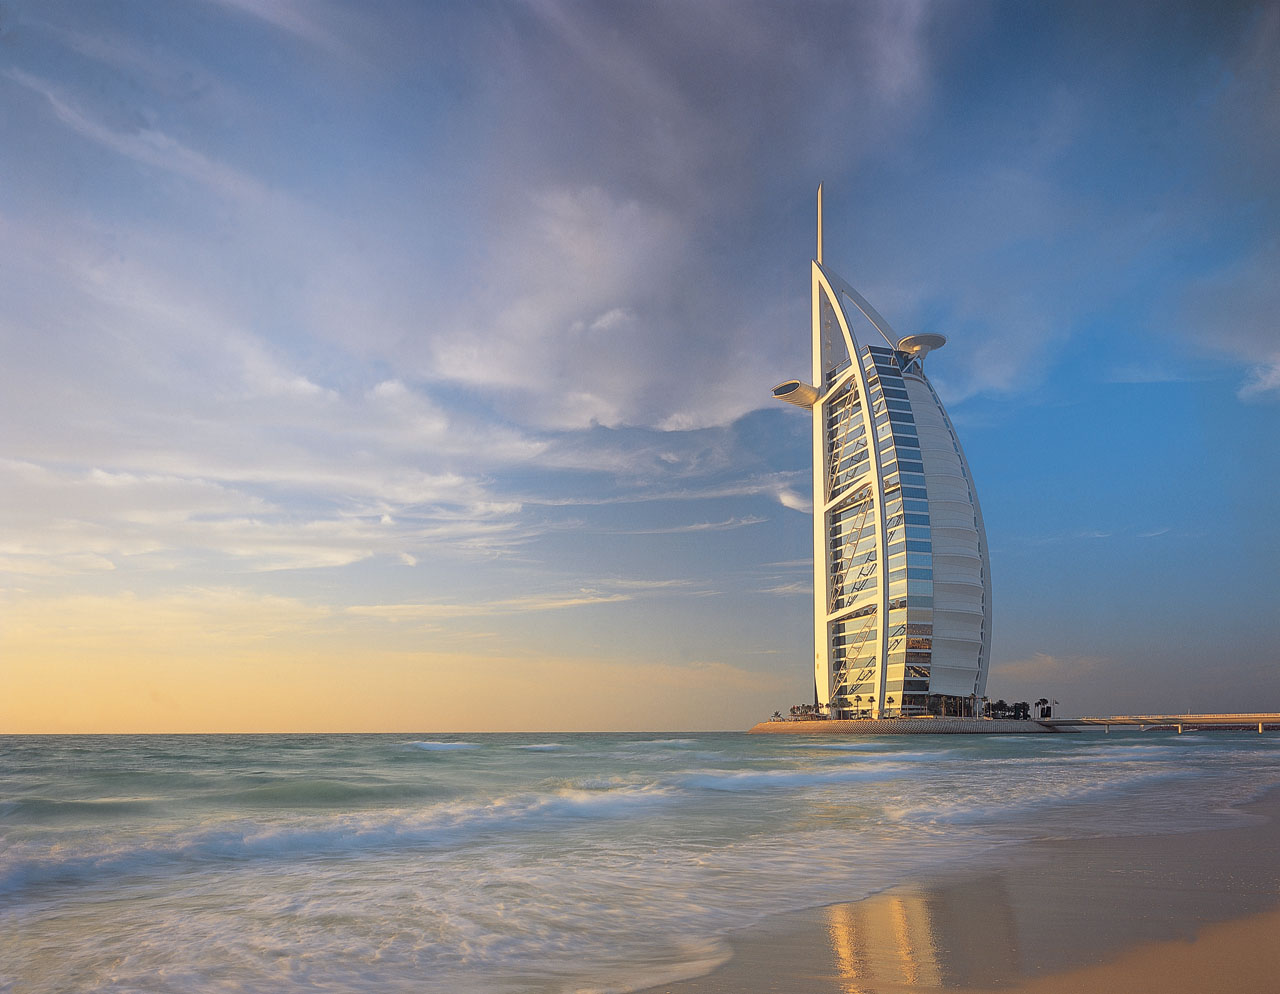 Burj al arab dubai tourist destinations for The sail hotel dubai